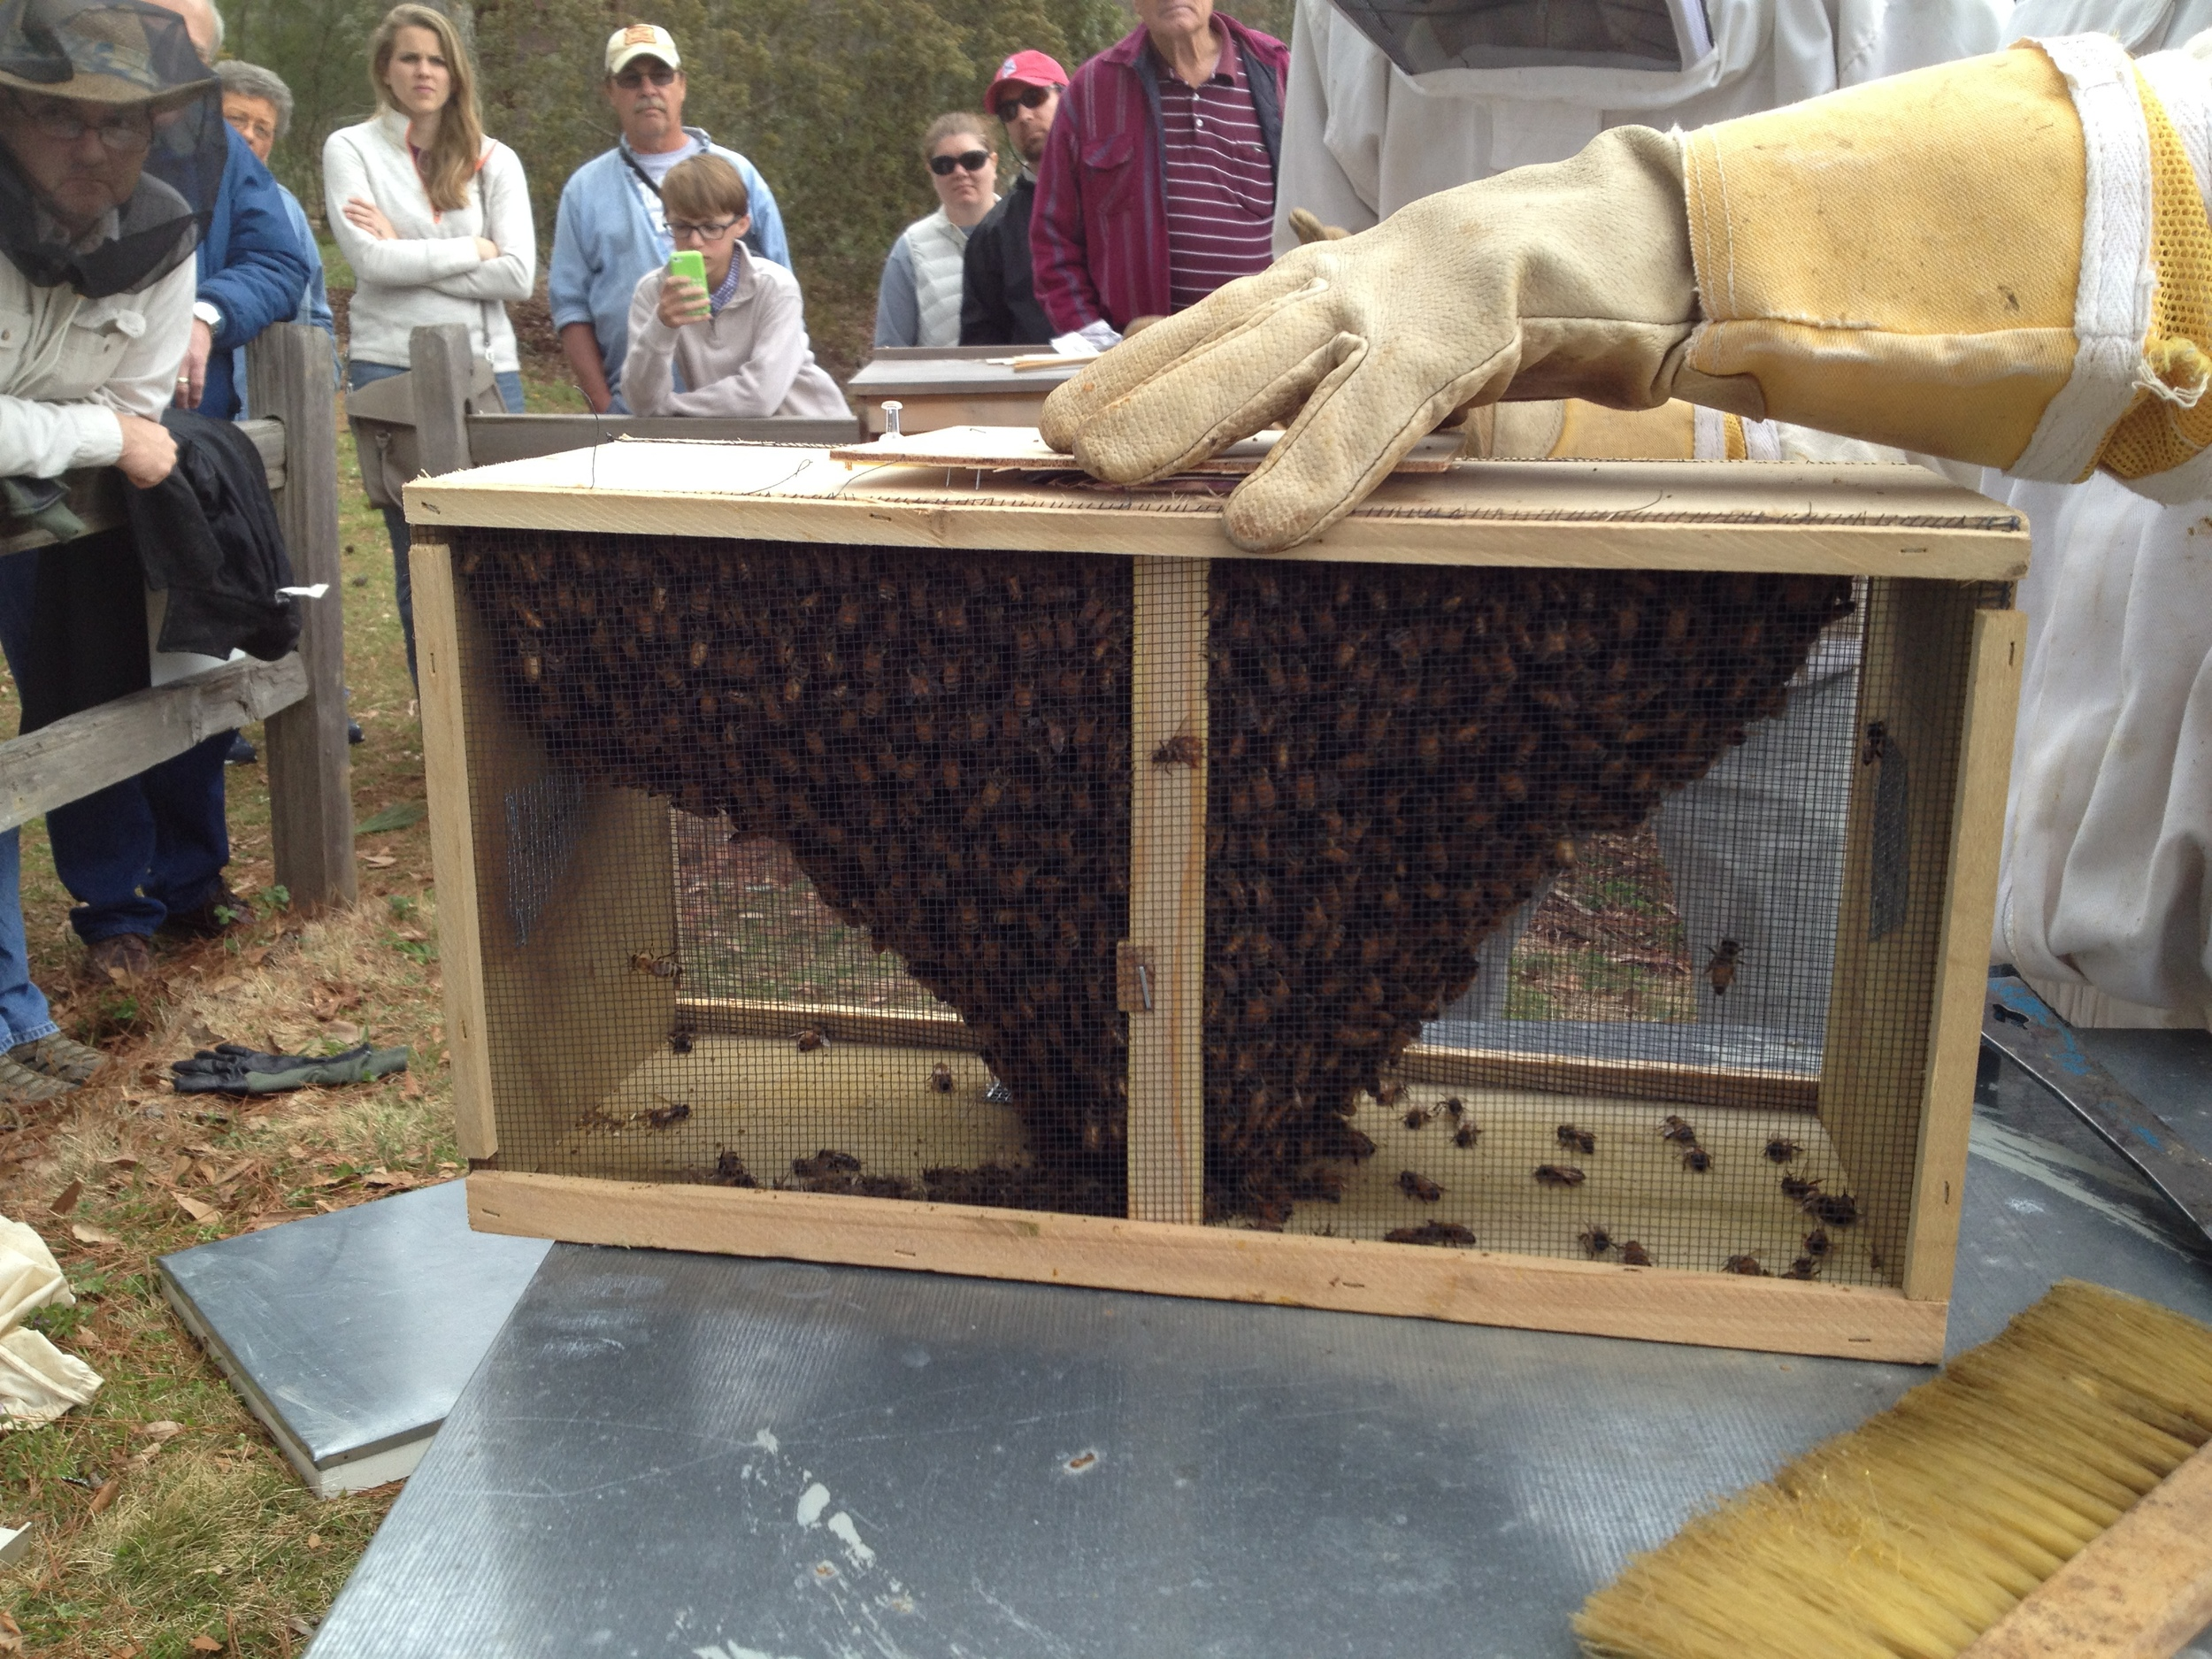 9. Order your bees